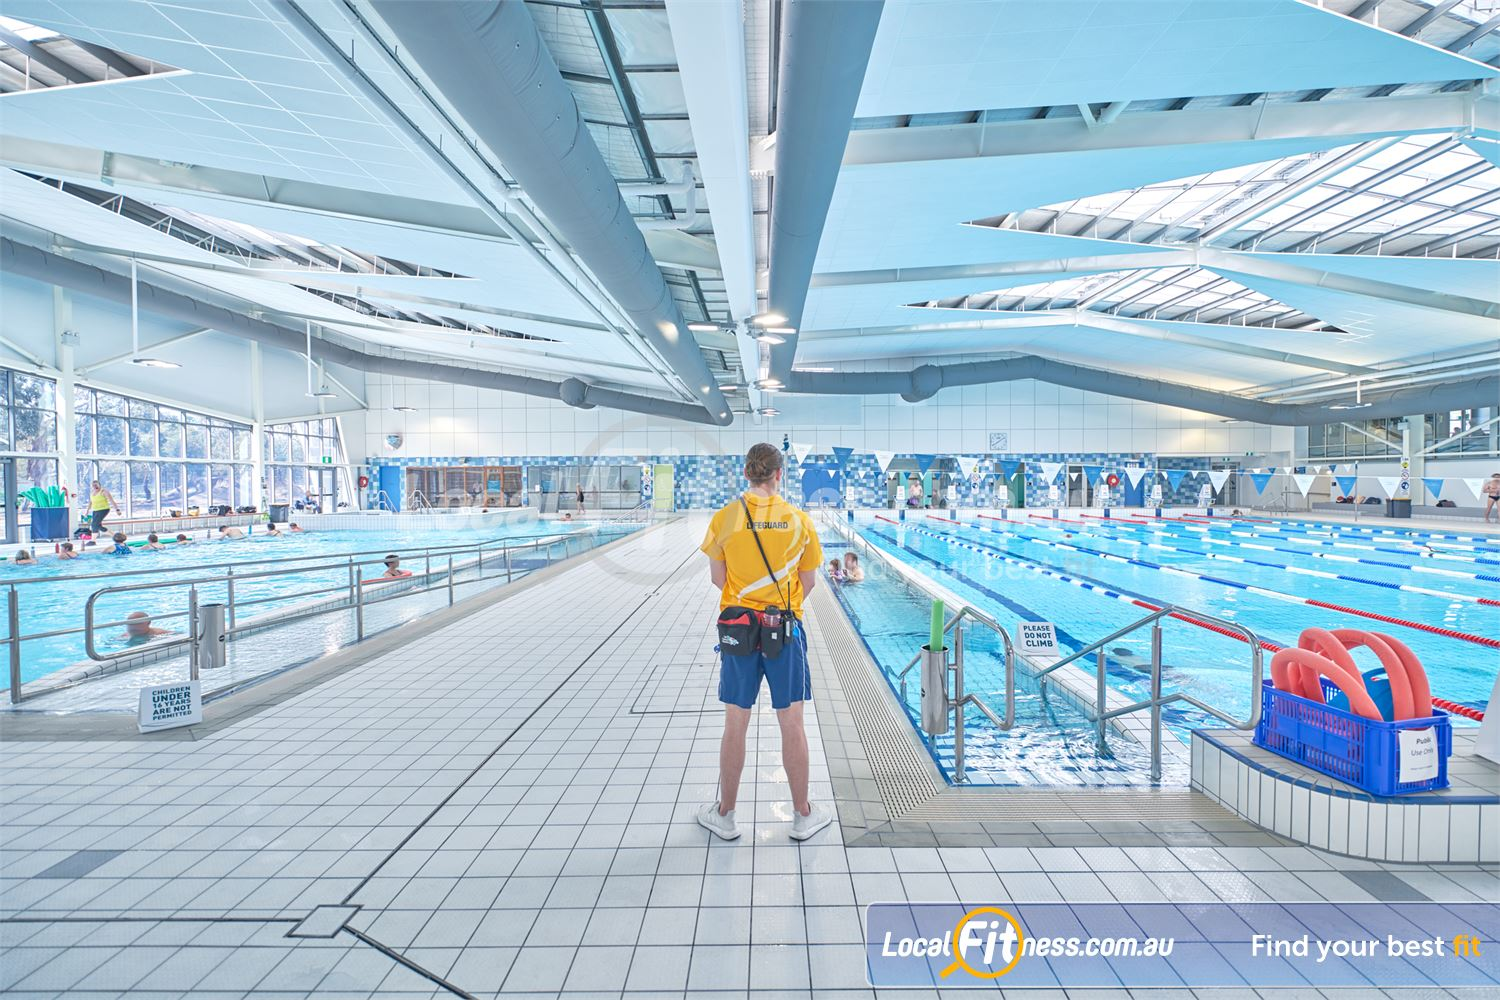 Eltham Leisure Centre Near North Warrandyte Lifeguards always on deck to ensure the safety of our members and guests.